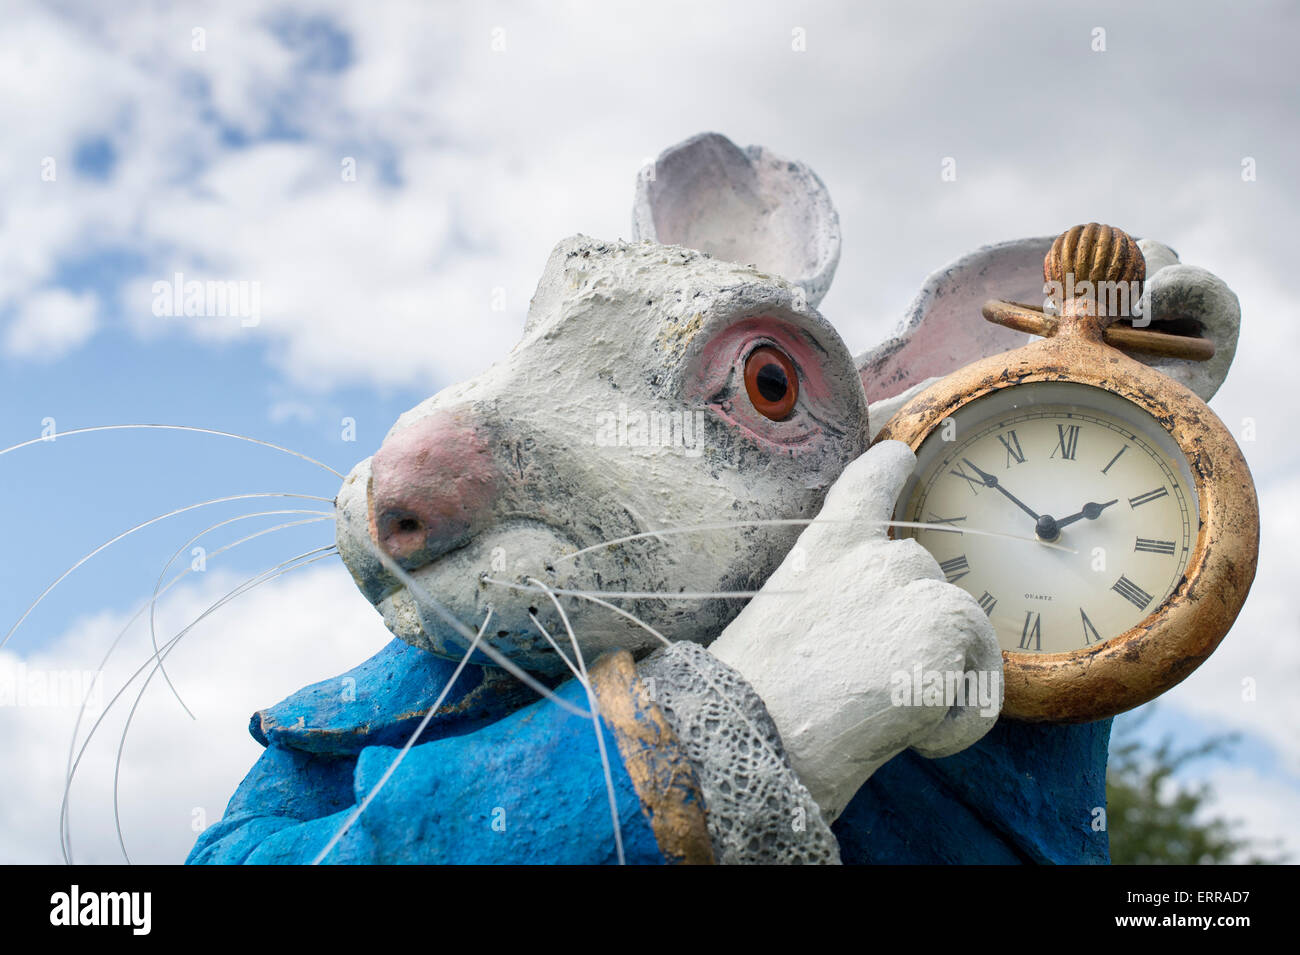 White Rabbit statue at an Alice in Wonderland event at RHS Wisley Gardens, Surrey, England - Stock Image